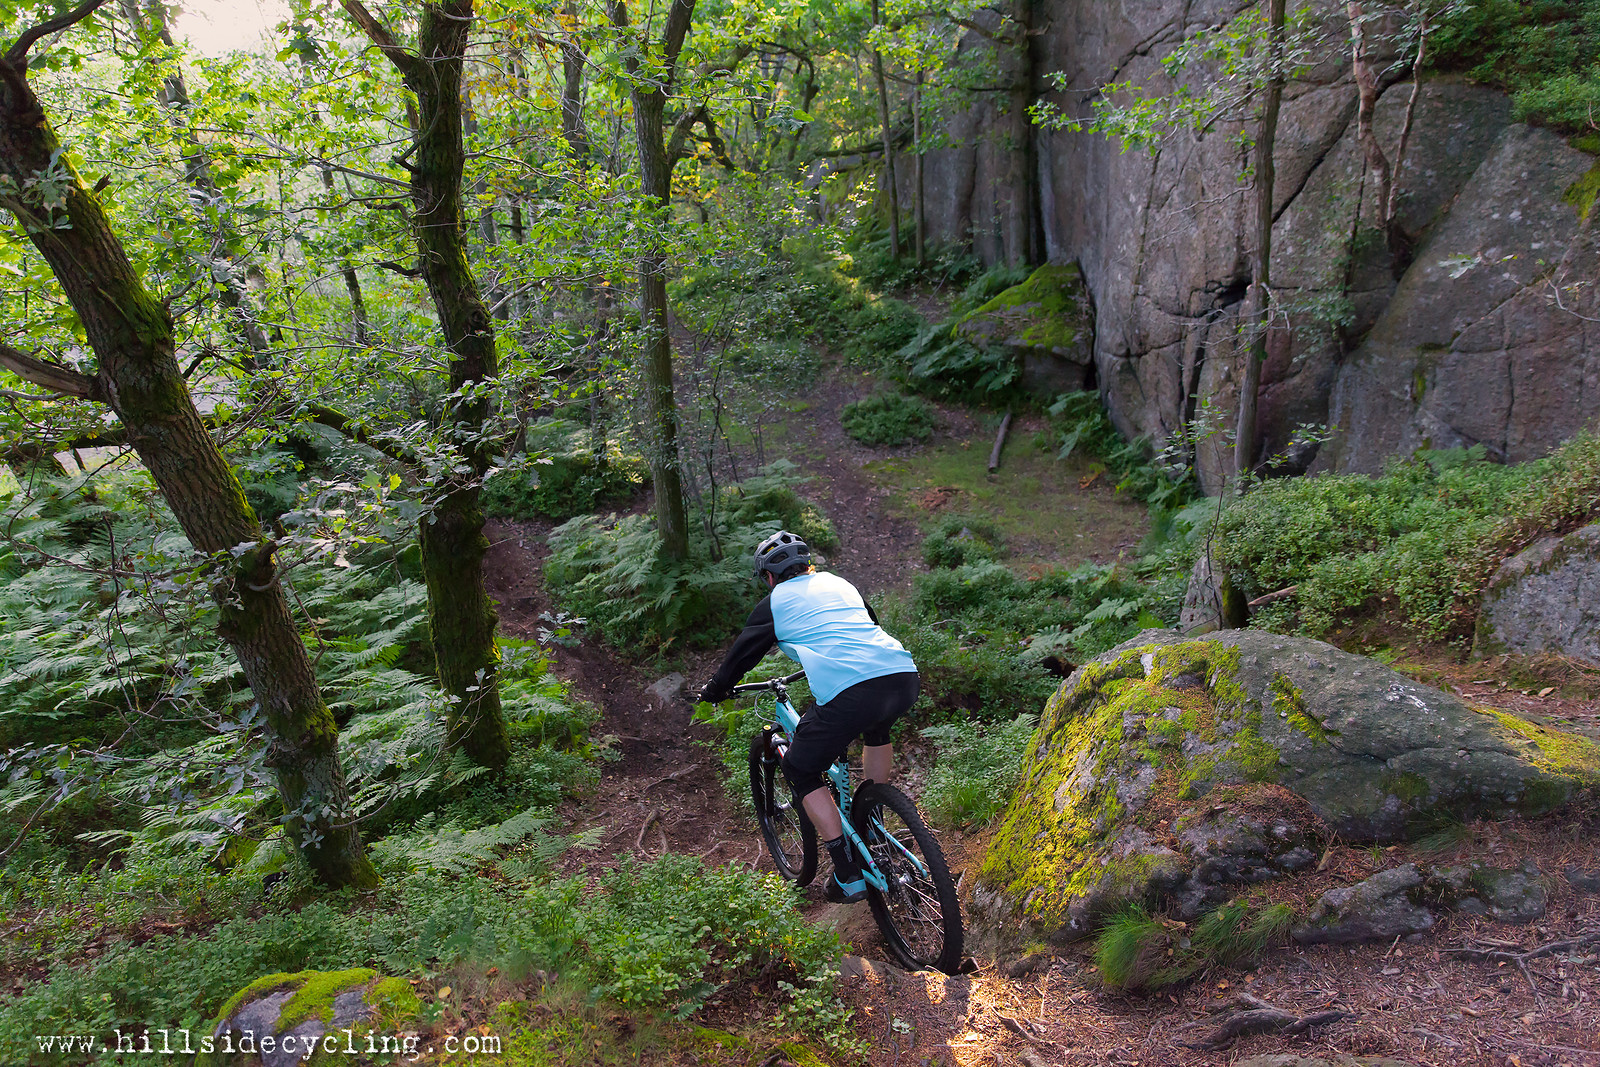 Evening Ride, Gothenburg, Sweden - Hillside Cycling - Mountain Biking Pictures - Vital MTB